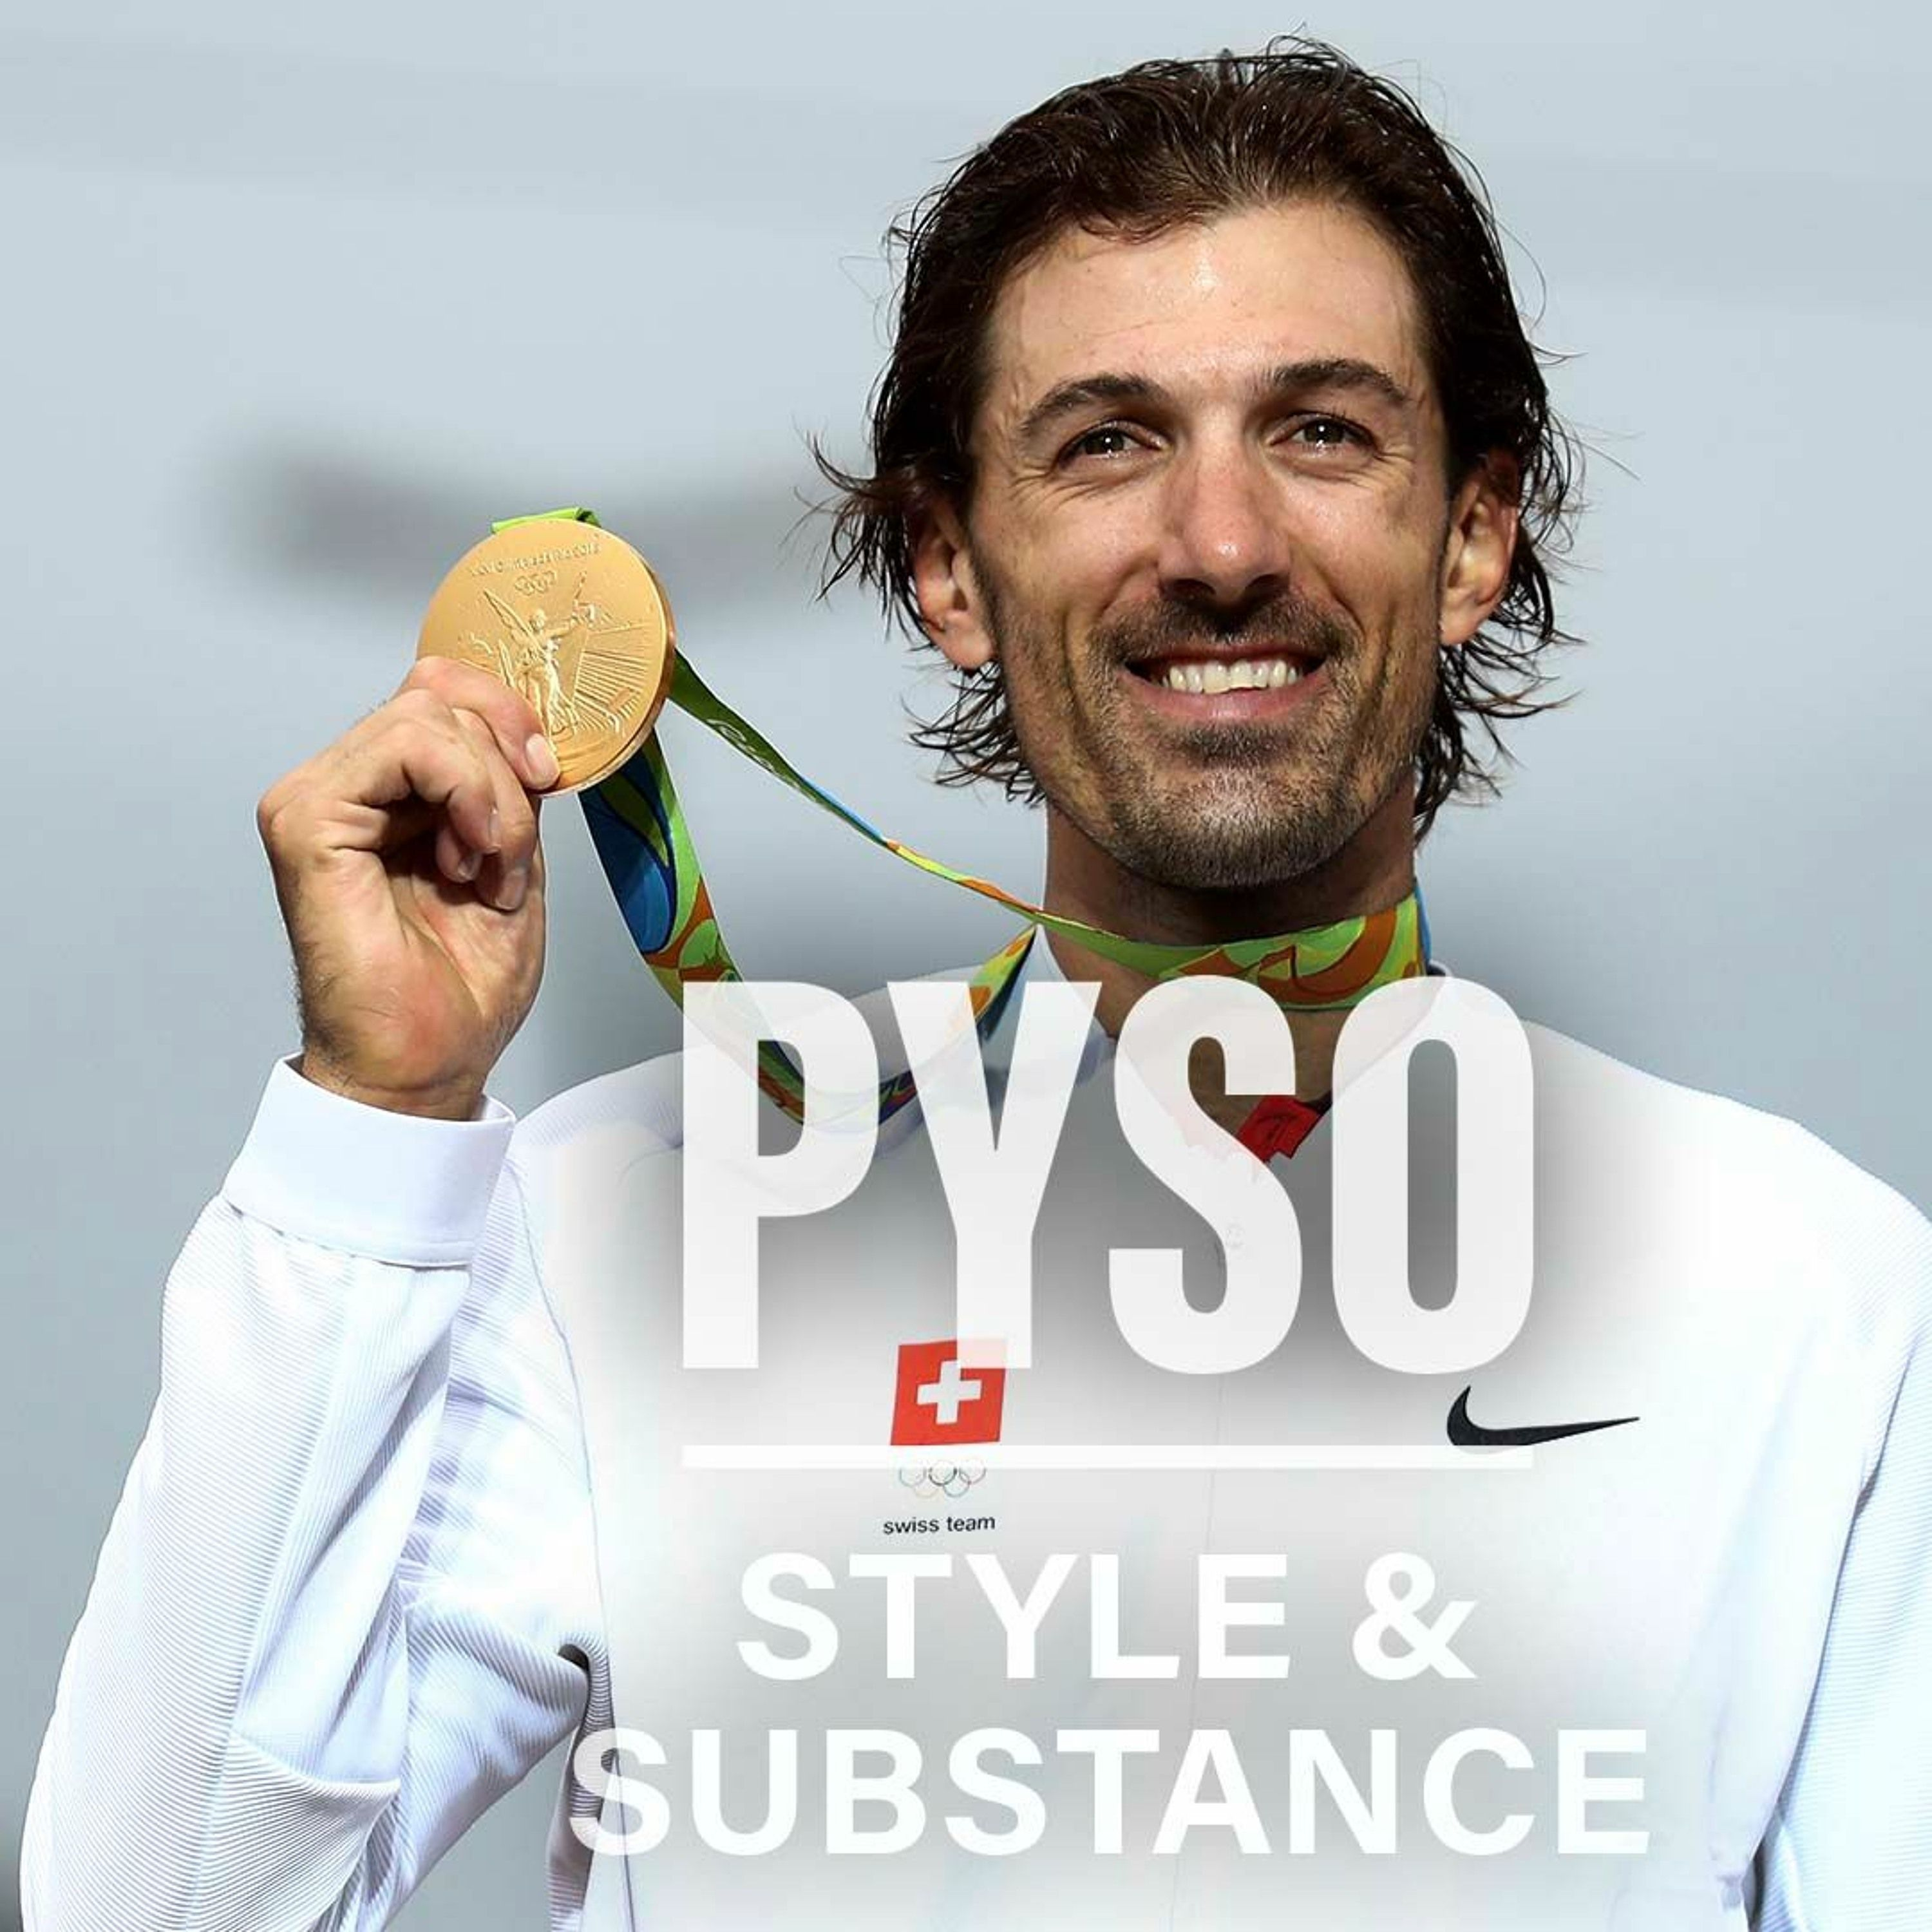 PYSO, ep. 80: Fabian Cancellara on a champion's mentality and the work that goes into it